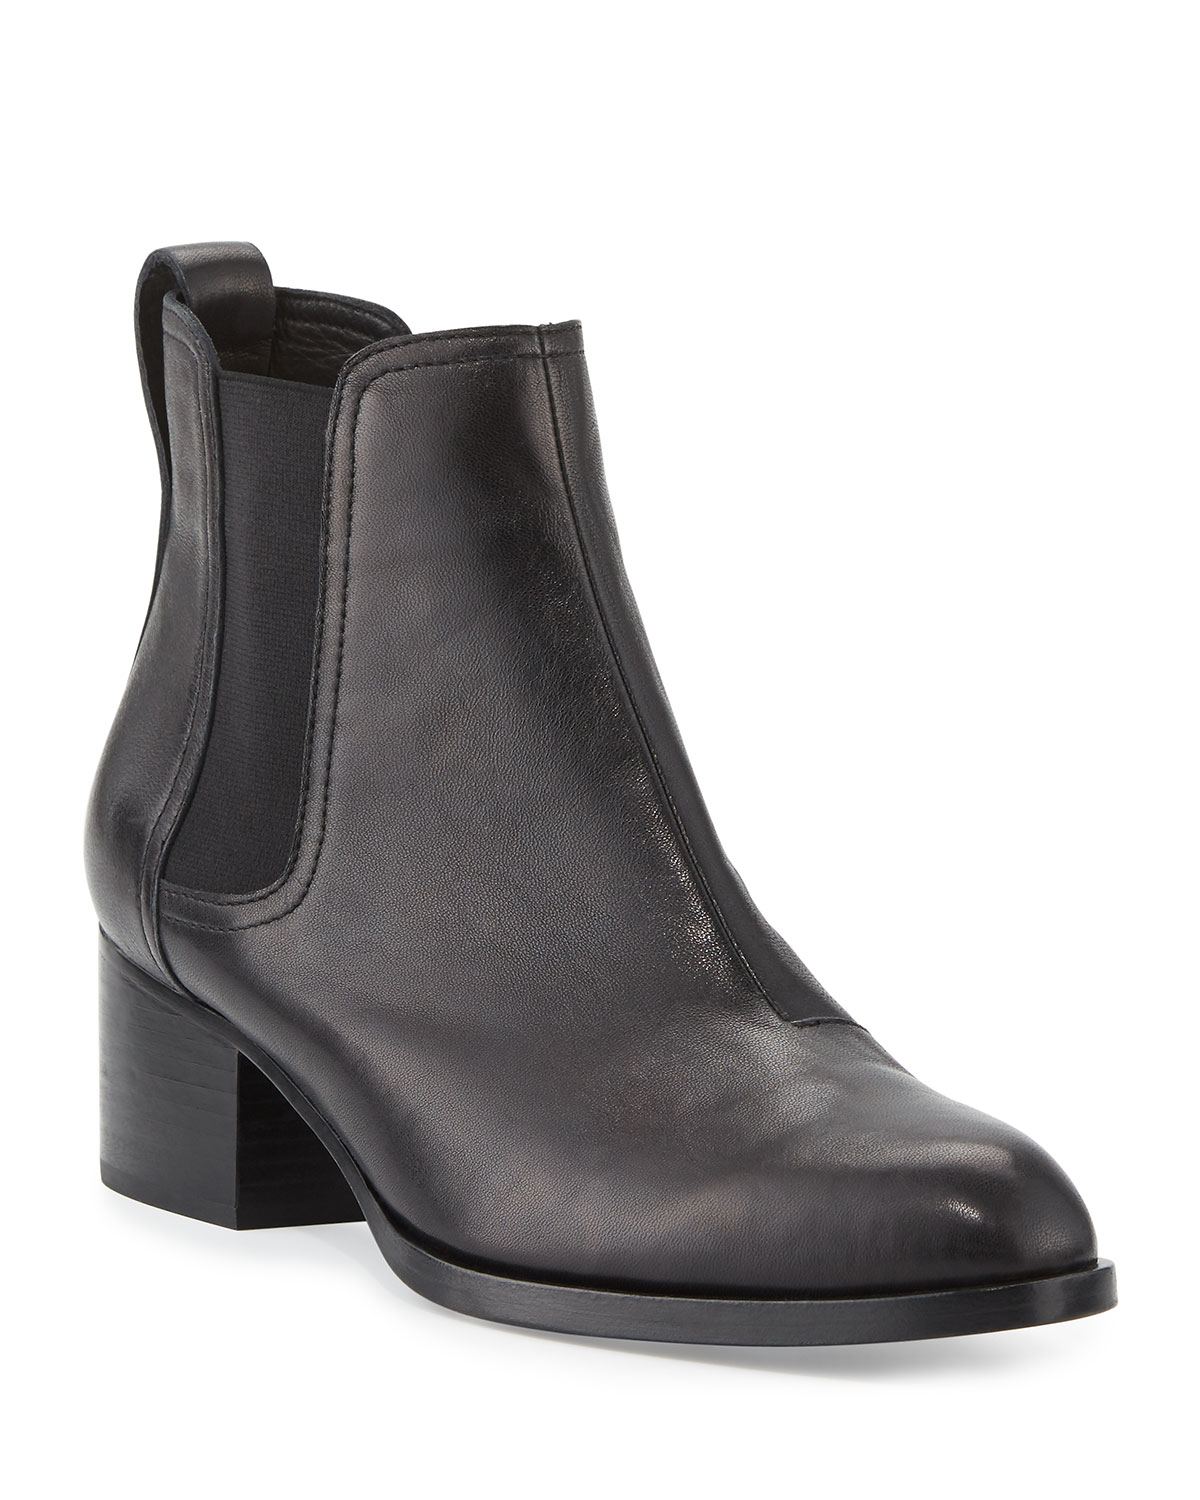 ef28d08493 Rag & Bone Walker Leather Ankle Boots, Black | Neiman Marcus